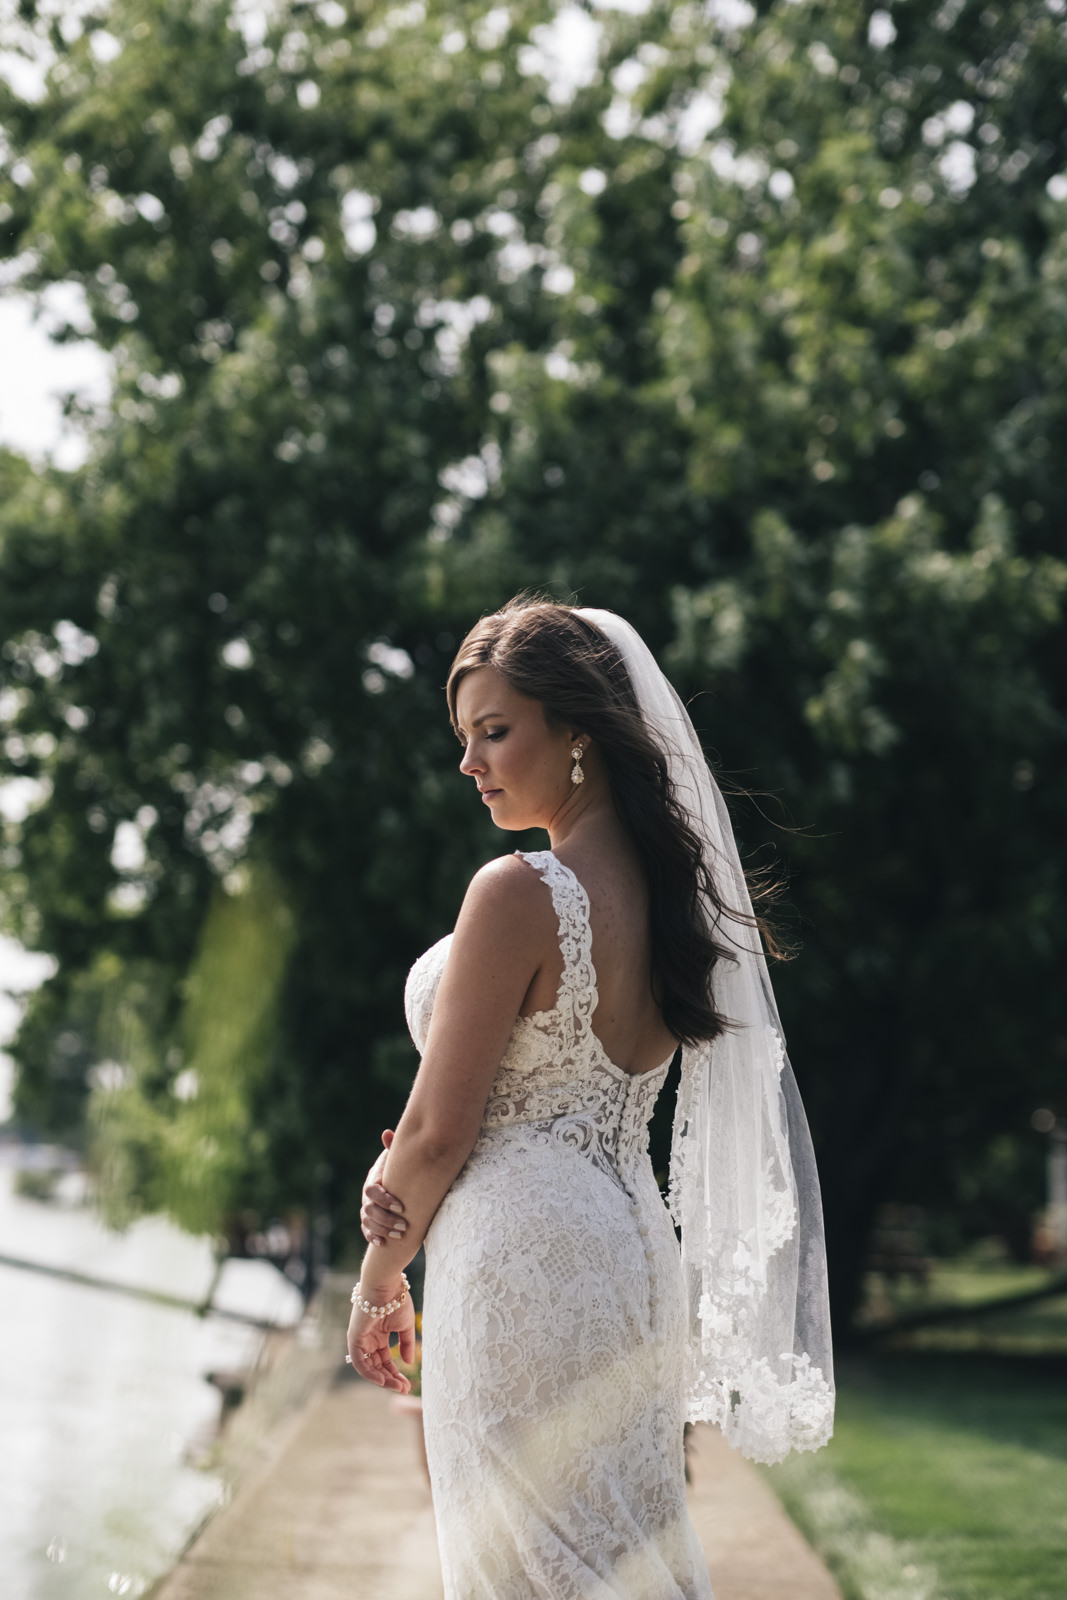 The bride poses near the lake for her wedding pictures in Michigan.